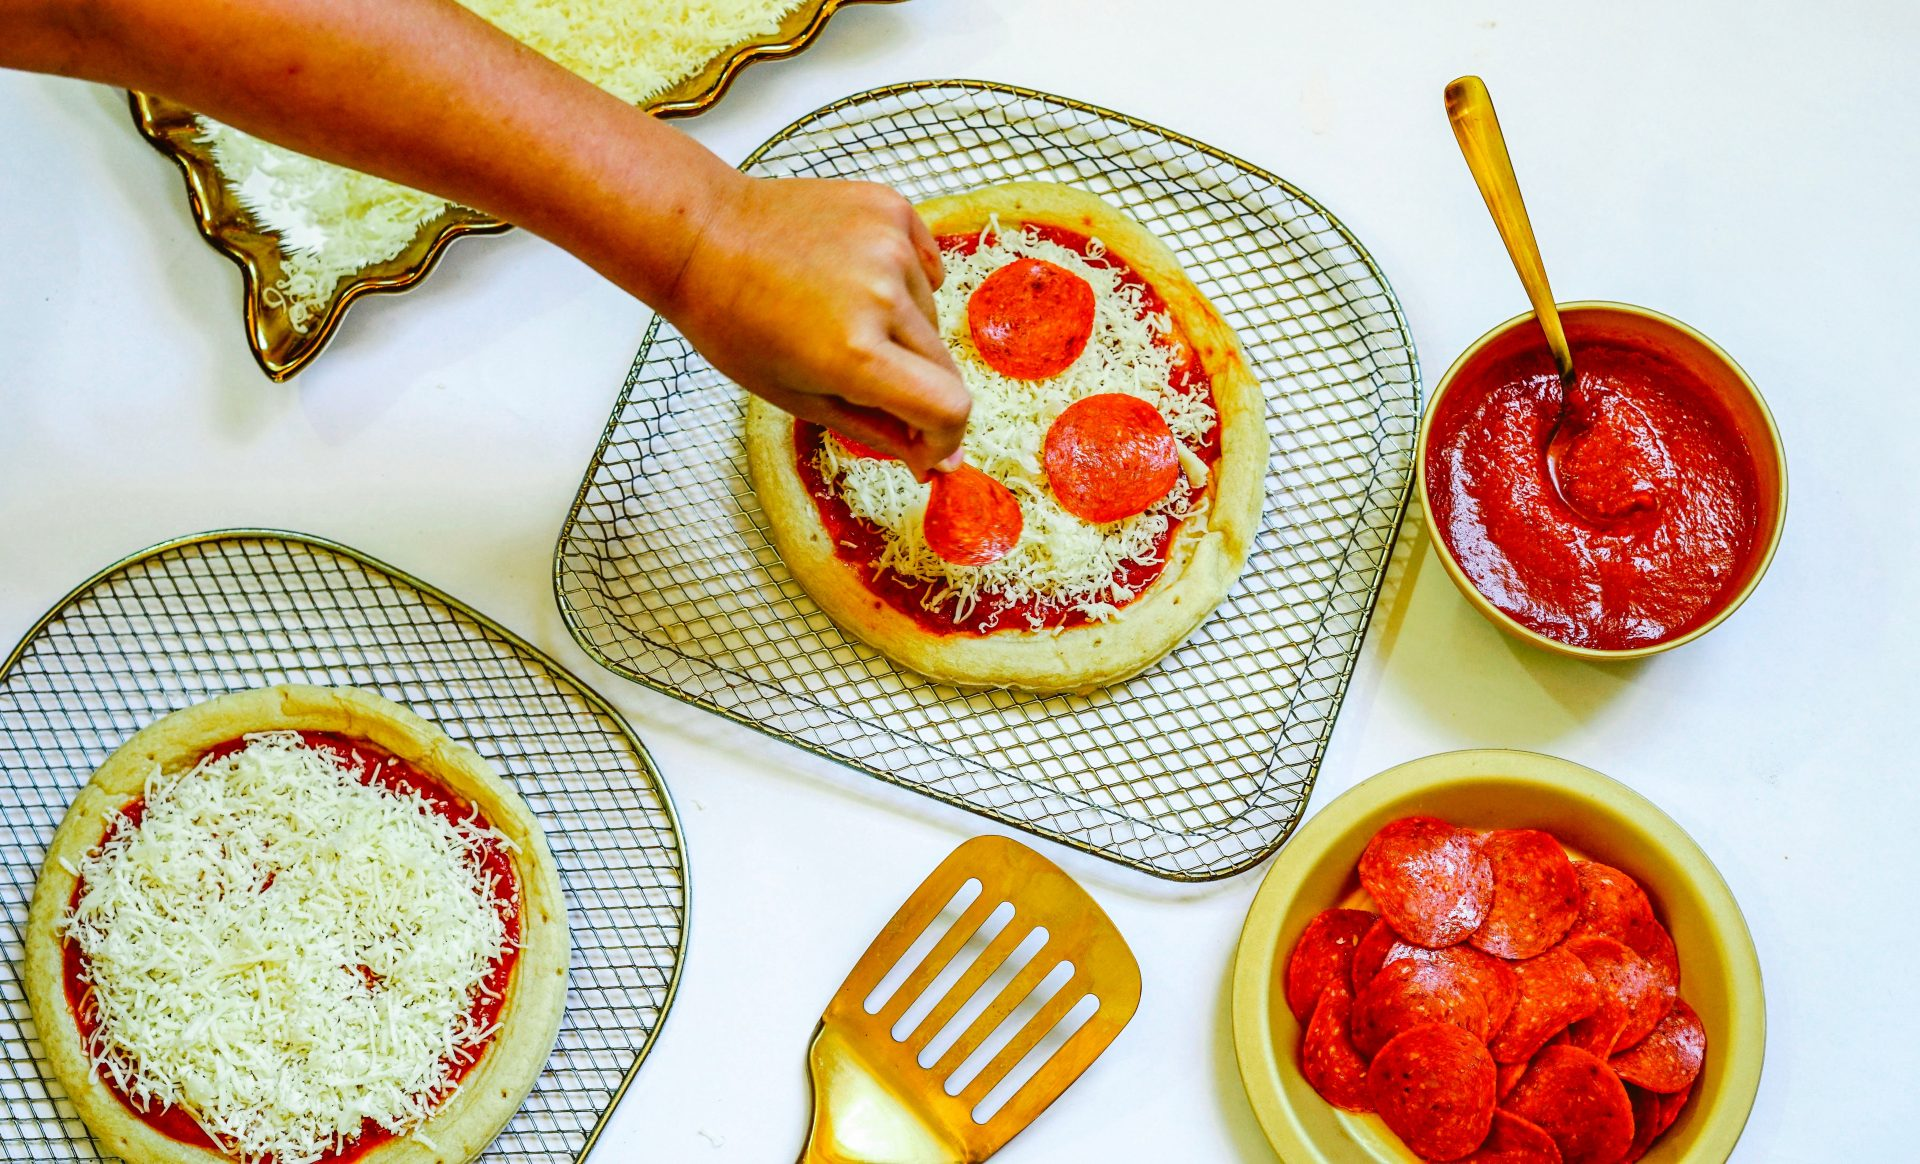 If you want to get your kids more involved in the kitchen, this Air Fryer Pizza recipe is a great way to get started.